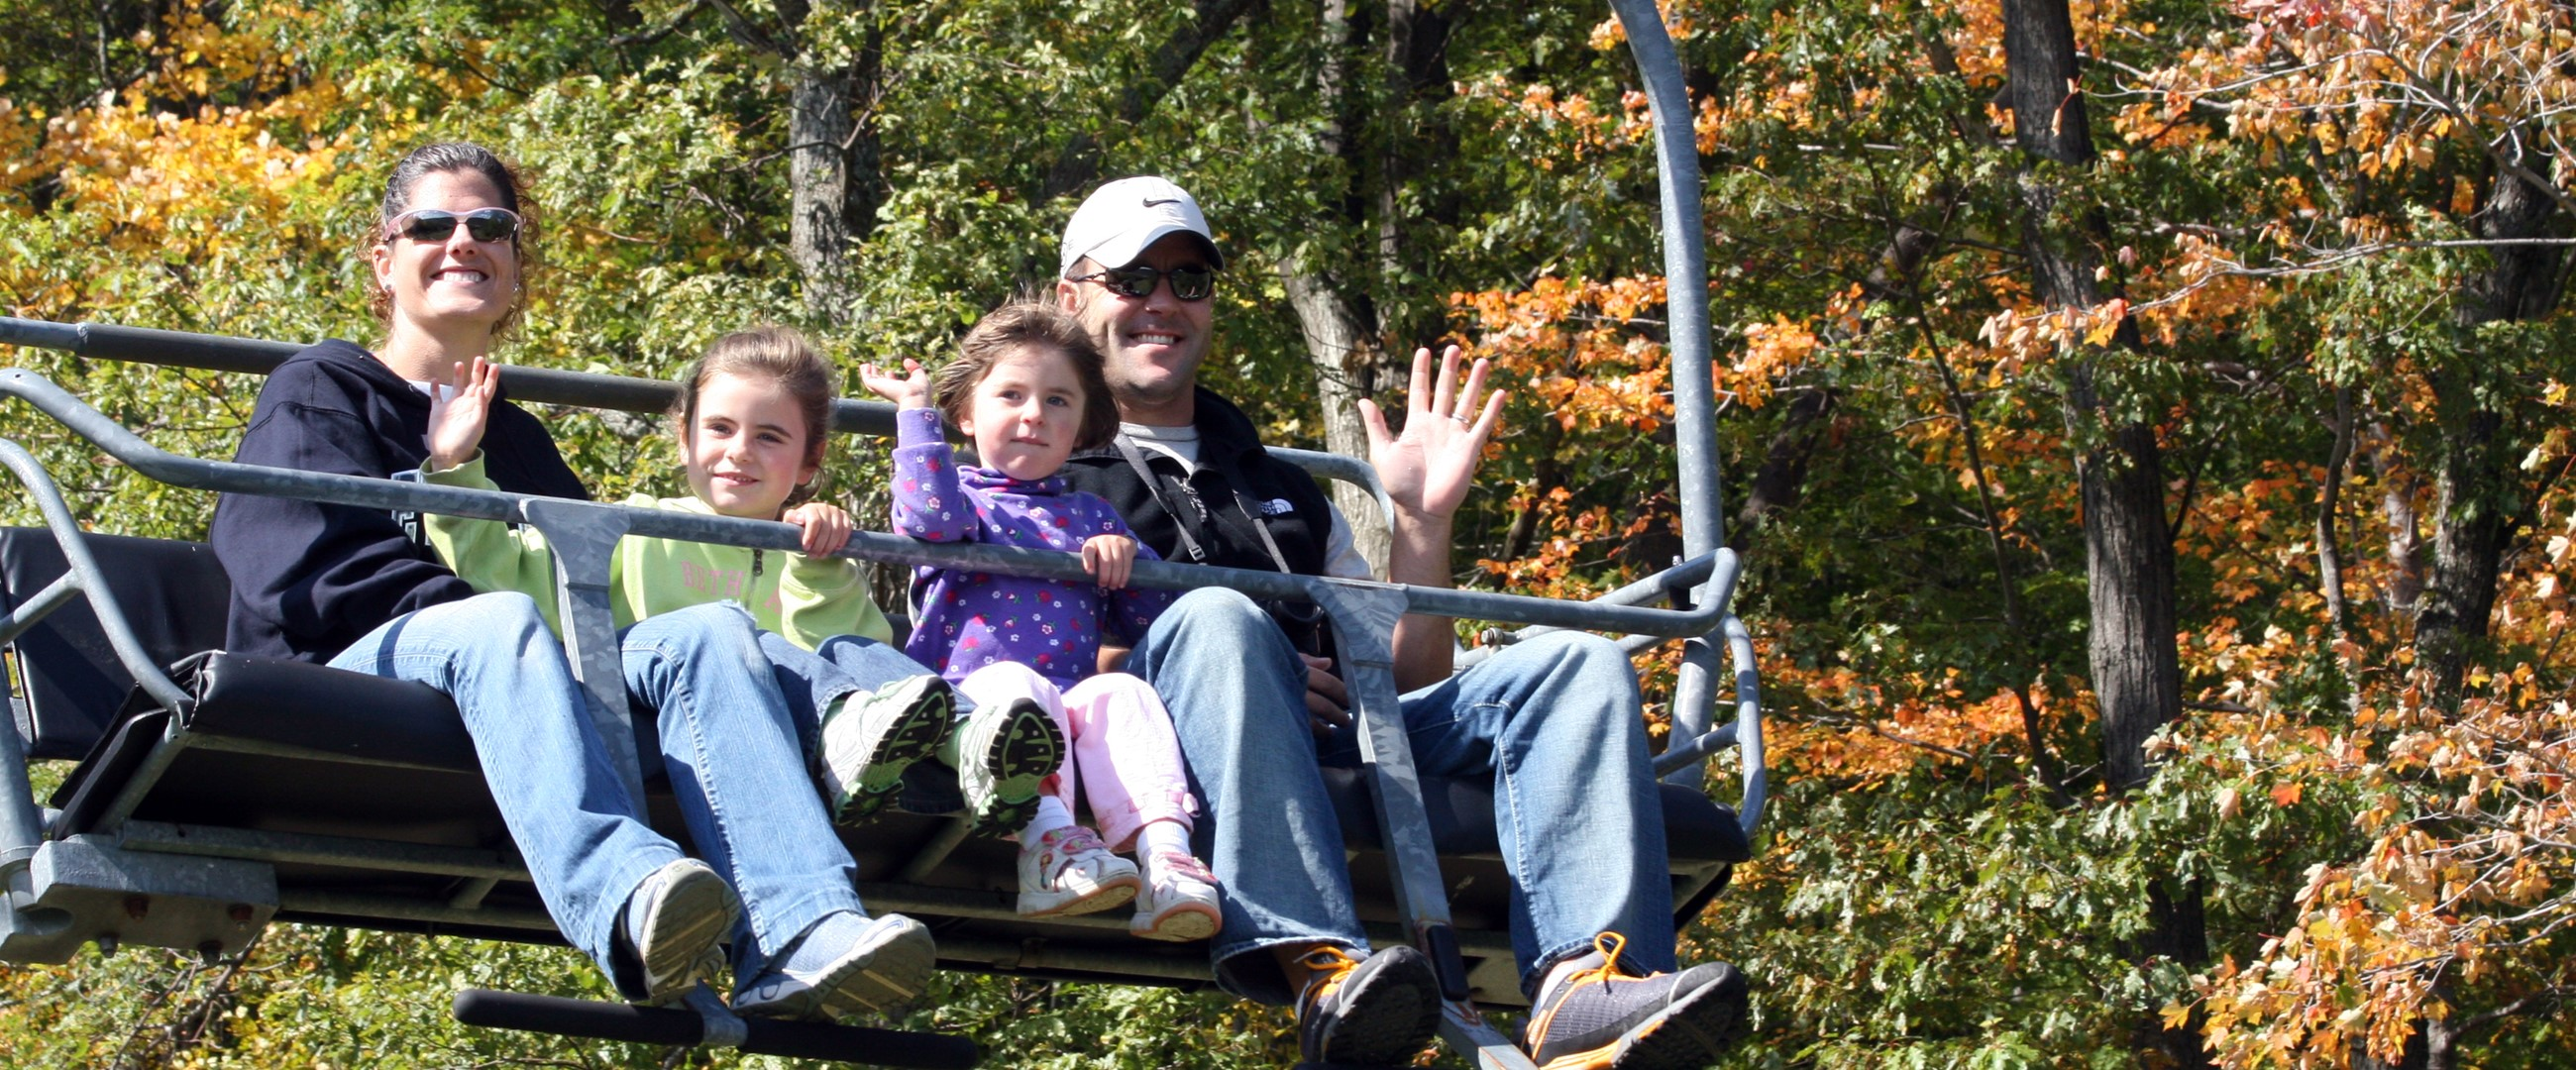 Fall Chairlift Ride - Bristol Mountain Resort